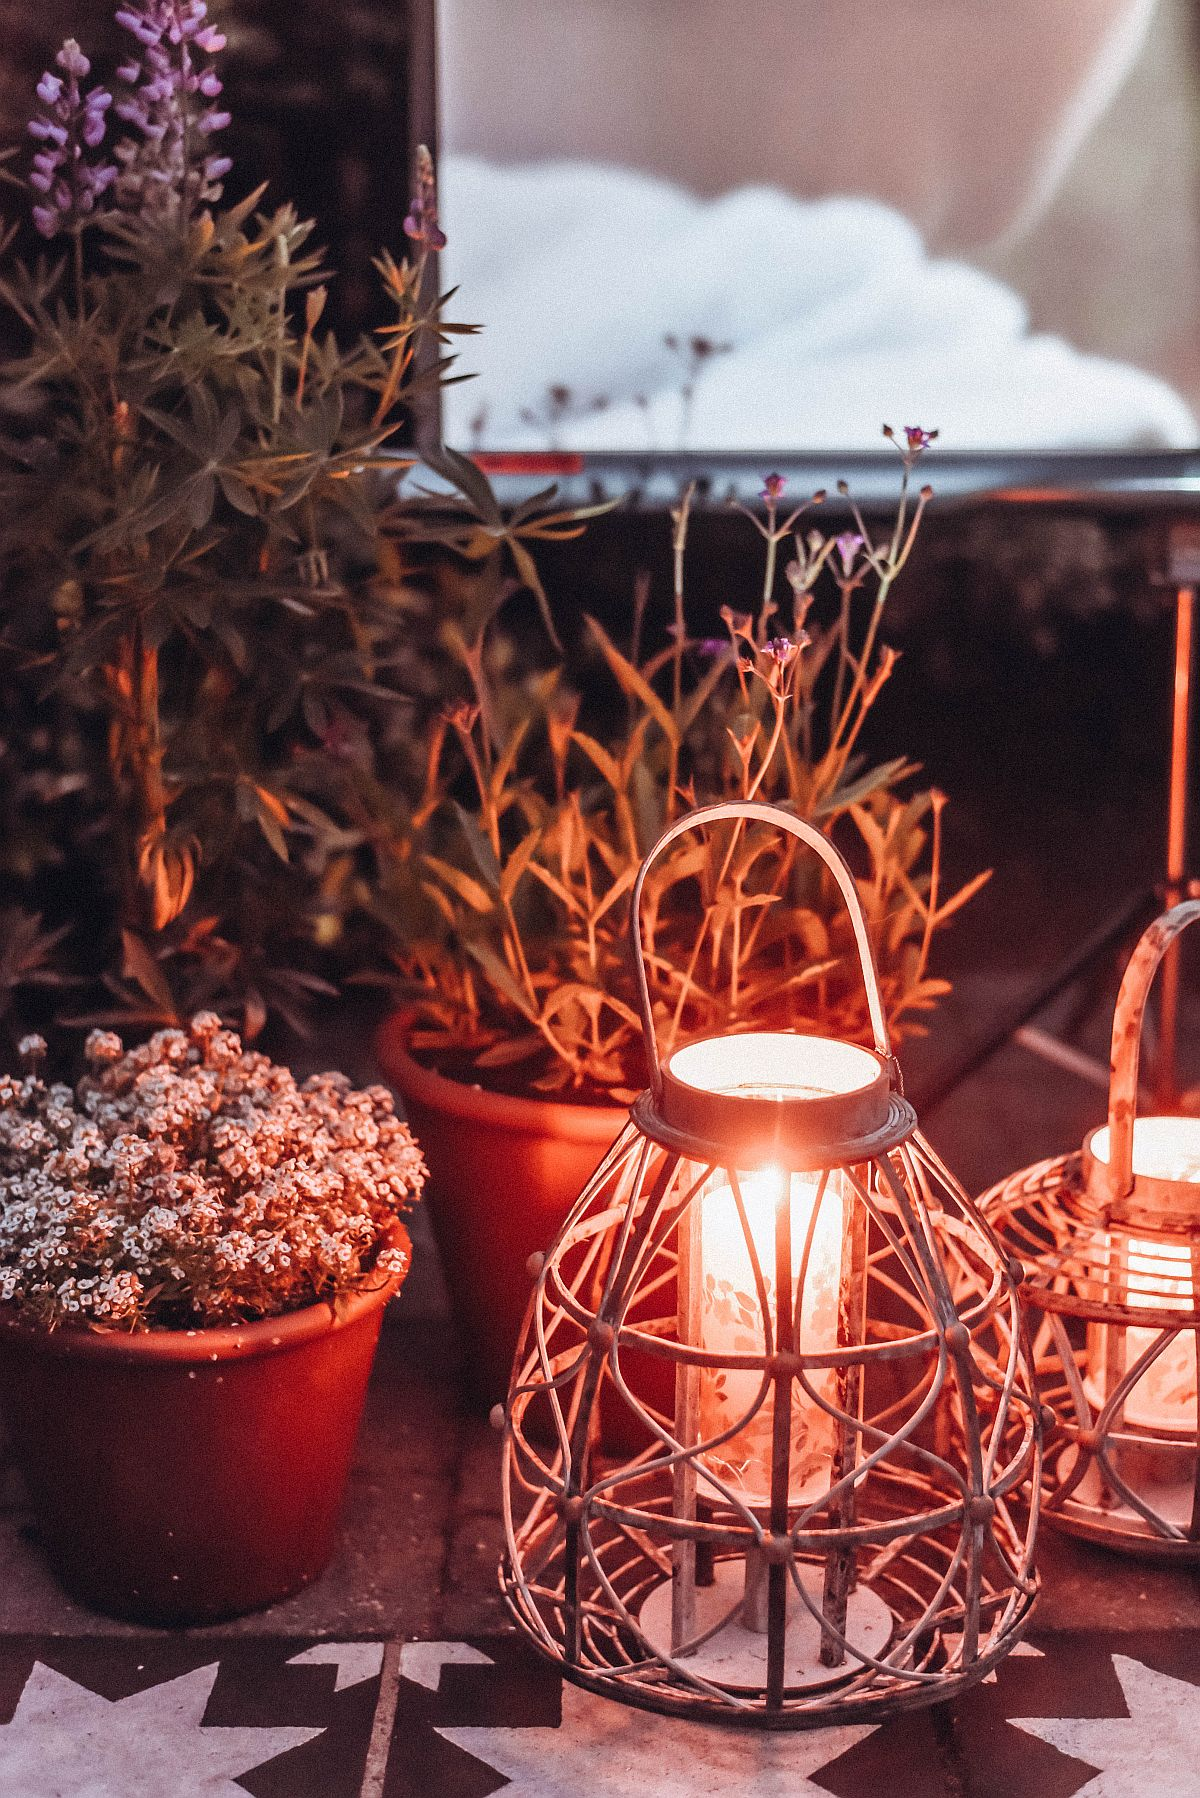 Finding the right decor and lights for the outdoor cinema